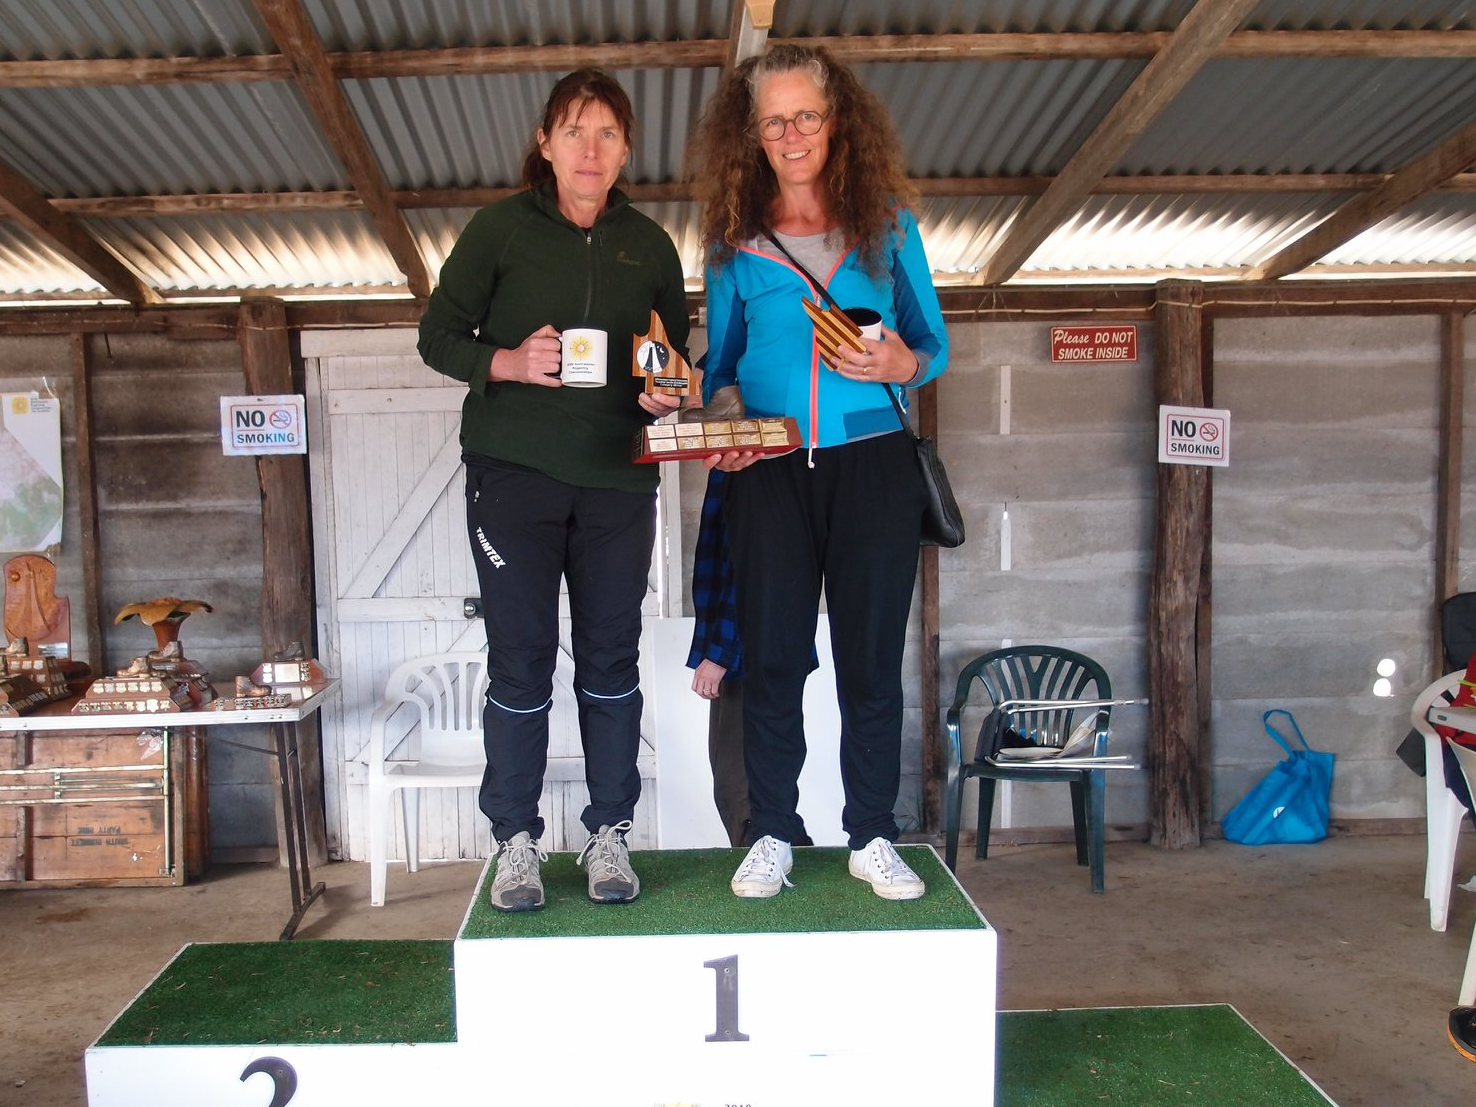 Christine Brown and Karen Pedley – Back on the podium.